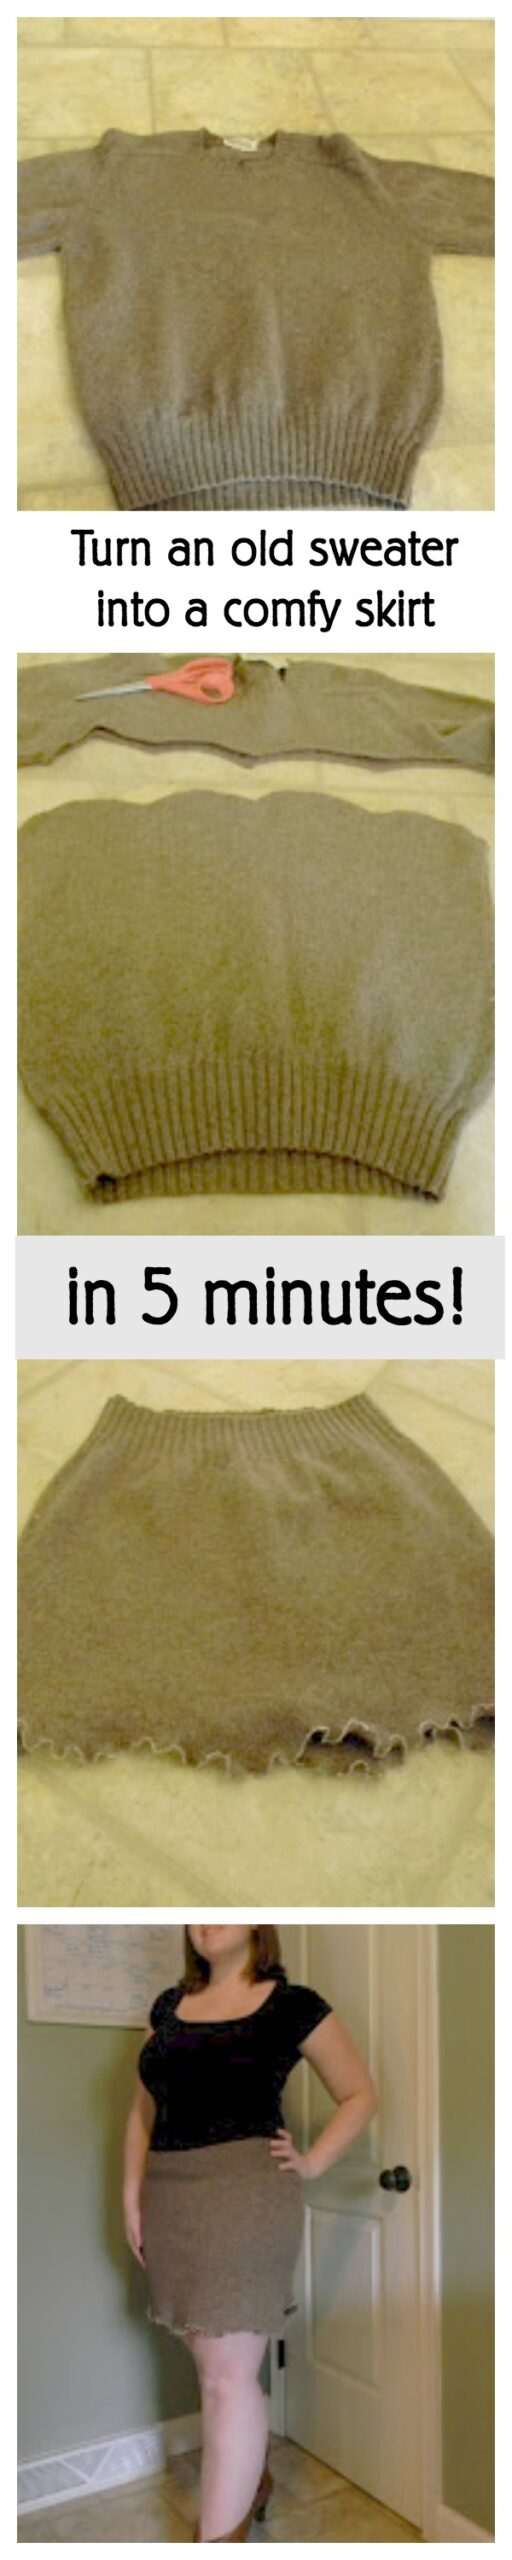 Turn an old sweater into a comfy skirt in five minutes